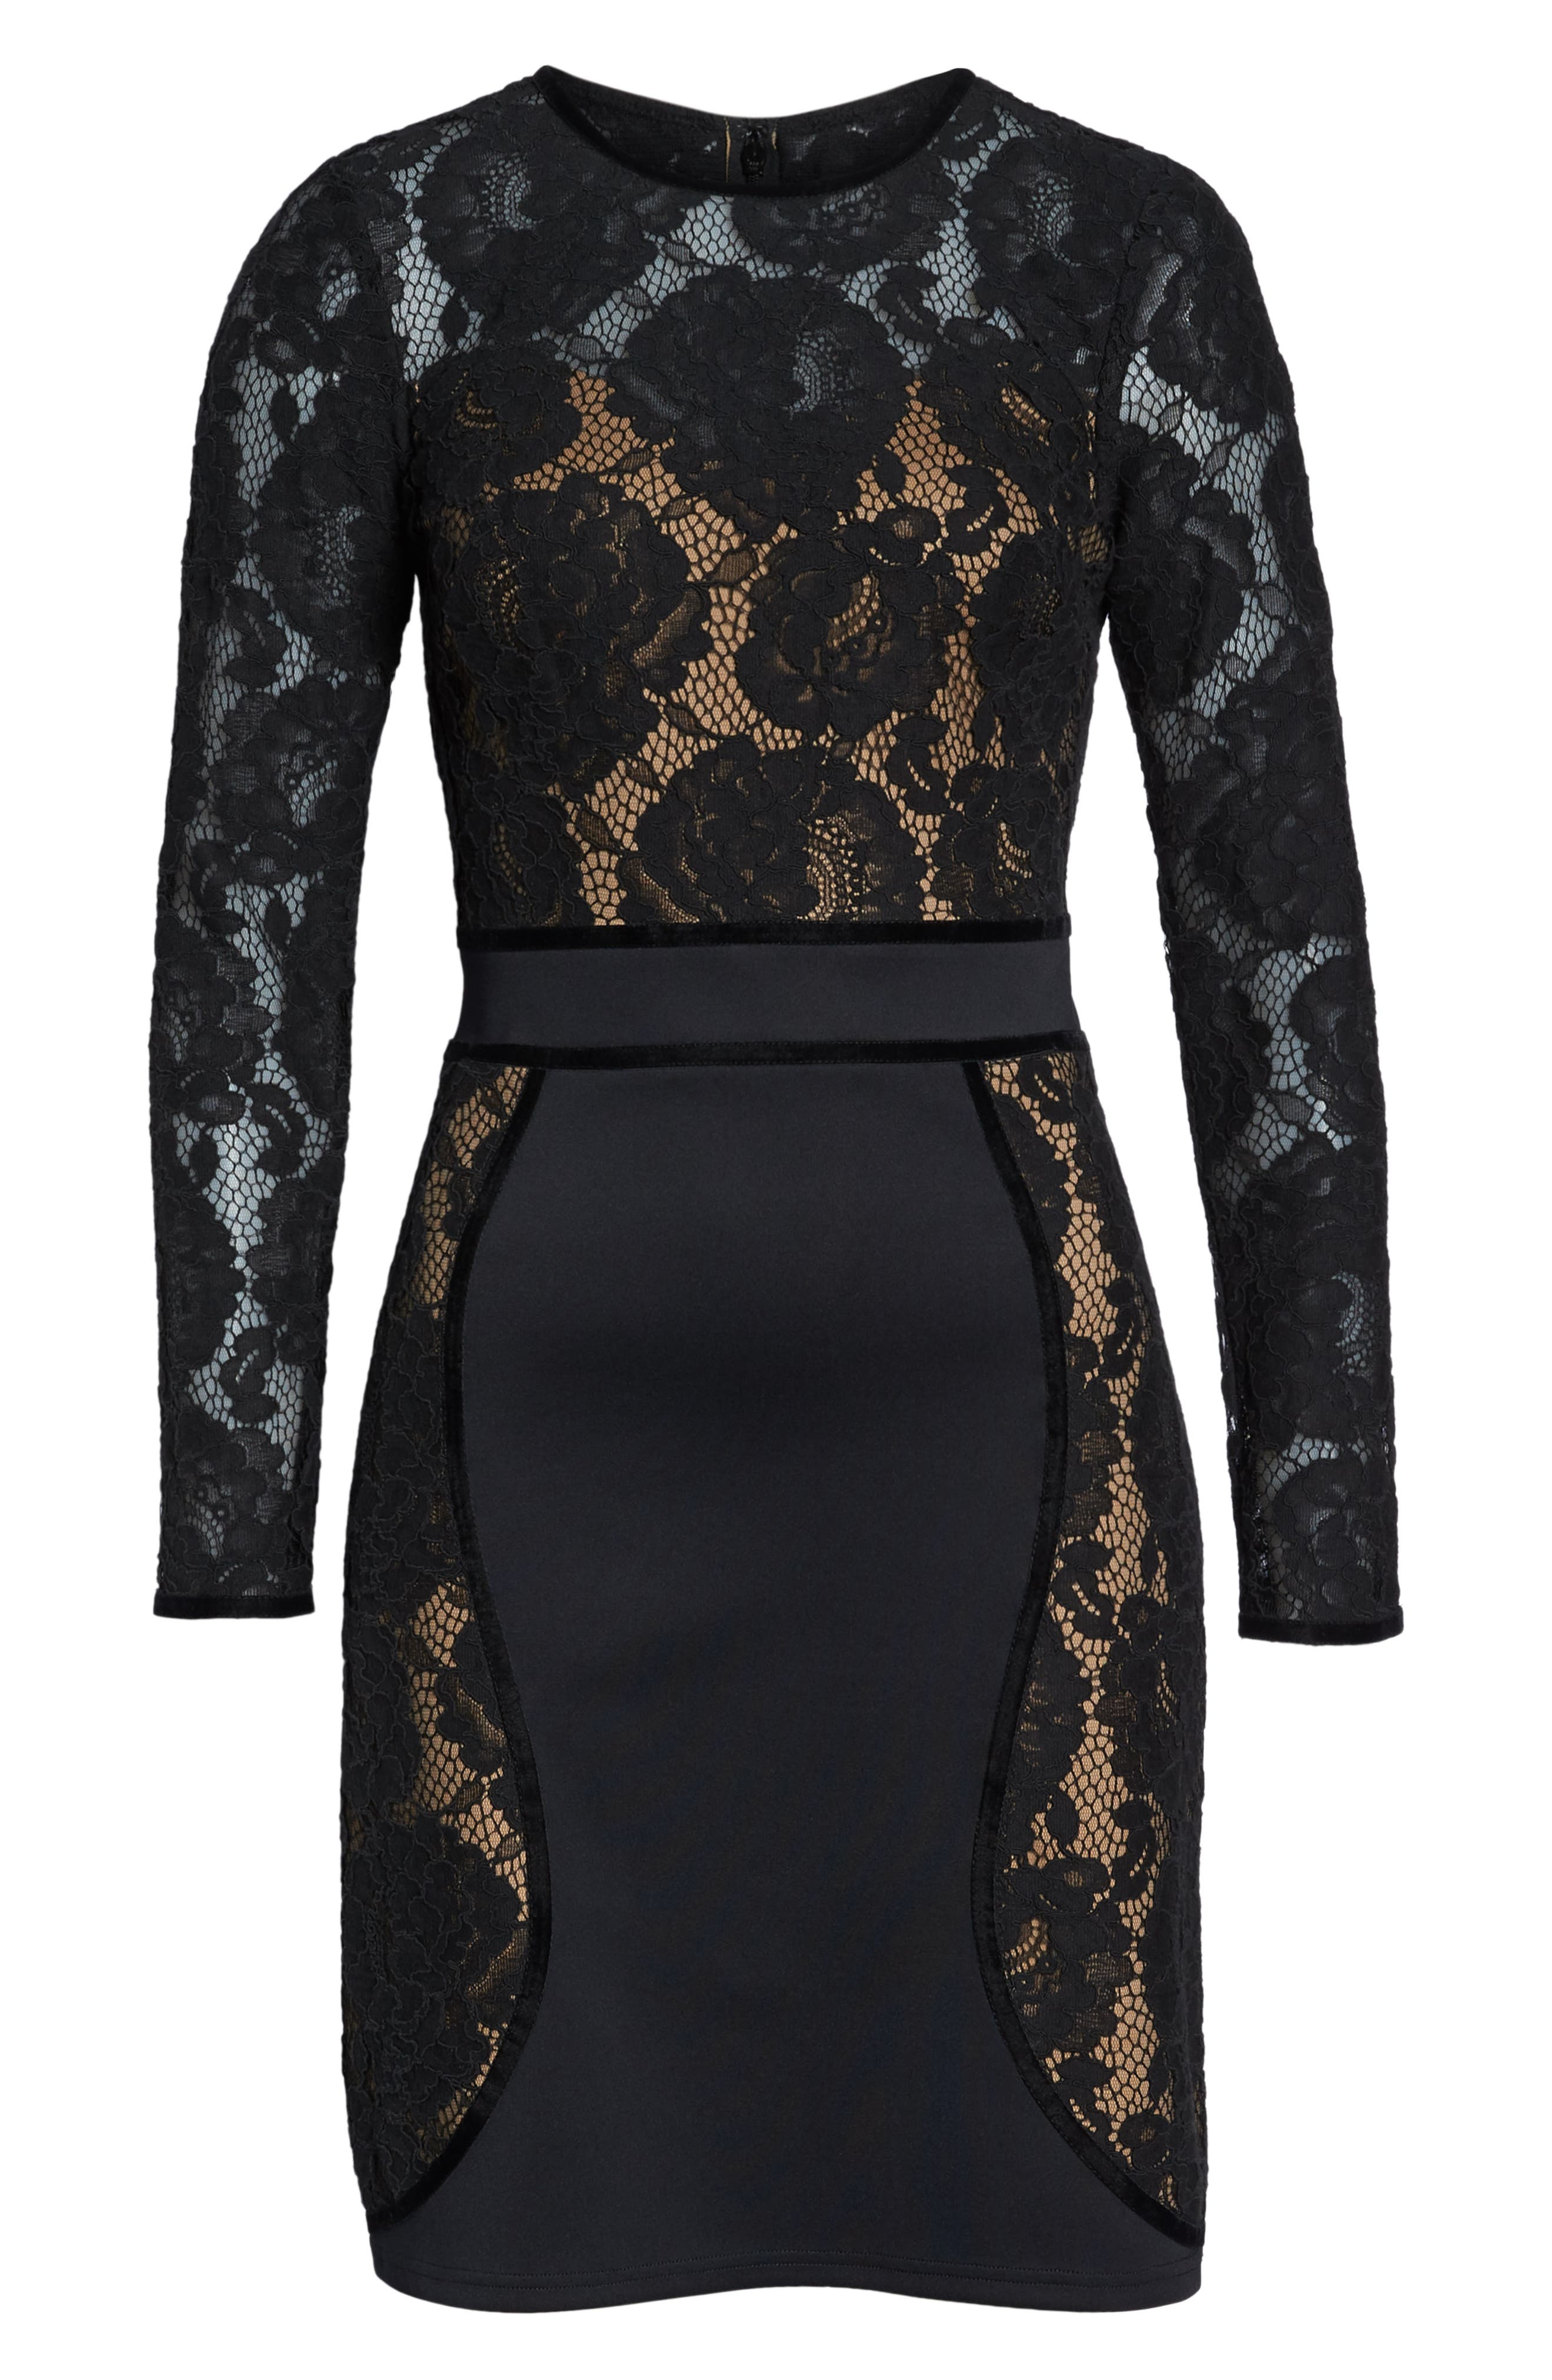 Embroidered Lace Dress,                             Alternate thumbnail 7, color,                             BLACK/ NUDE